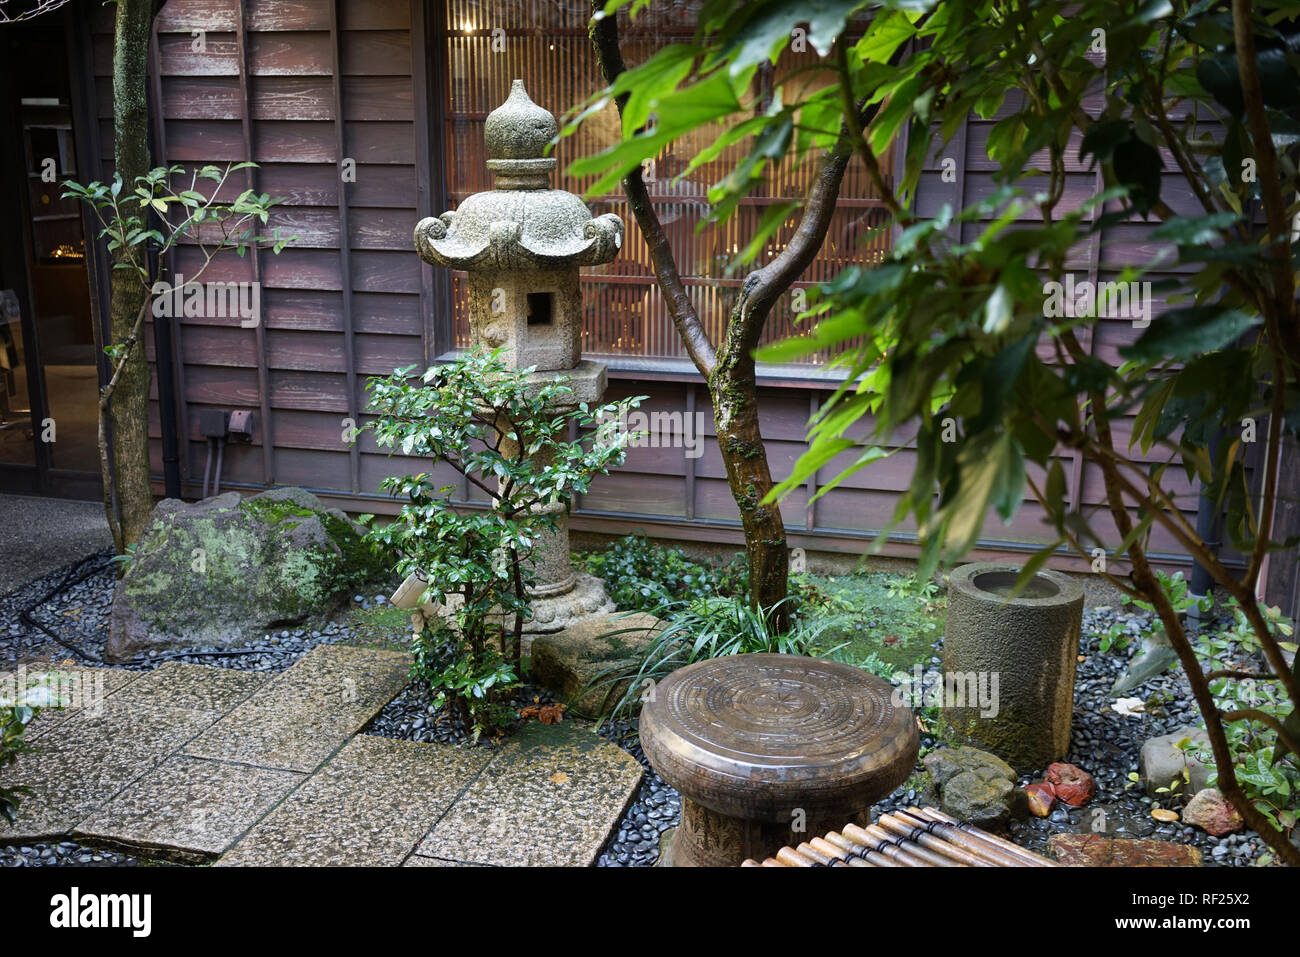 Delicieux Small Japanese Garden In Kanazawa, Japan Stock Photo ...